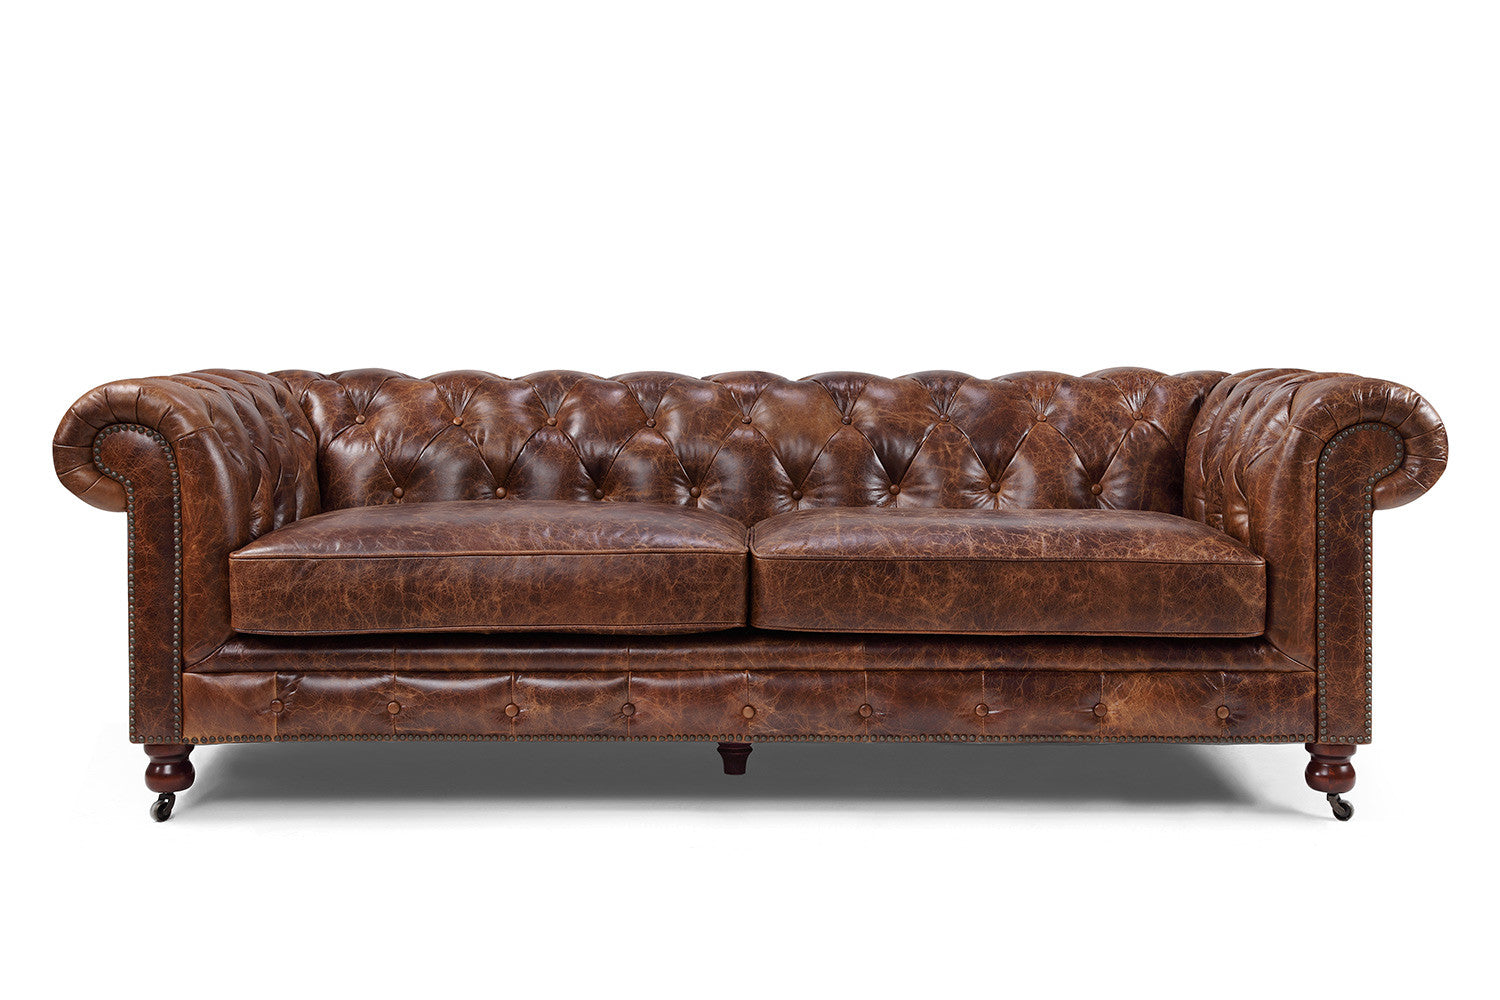 Canap chesterfield en cuir kensington rose moore - Canape chesterfield cuir occasion ...